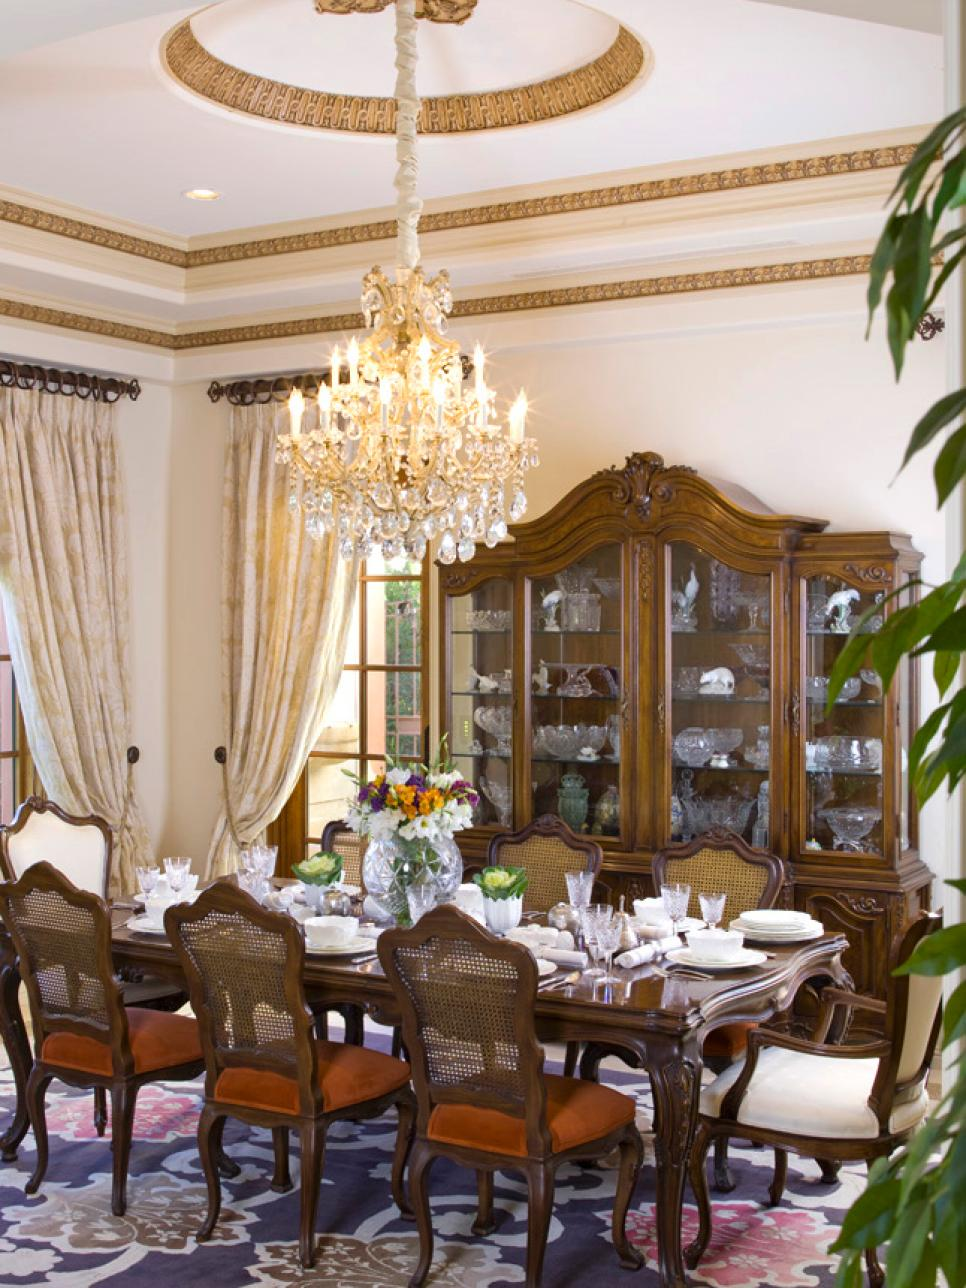 Remodeling ideas for dining rooms creative and simple for Dining room renovation ideas